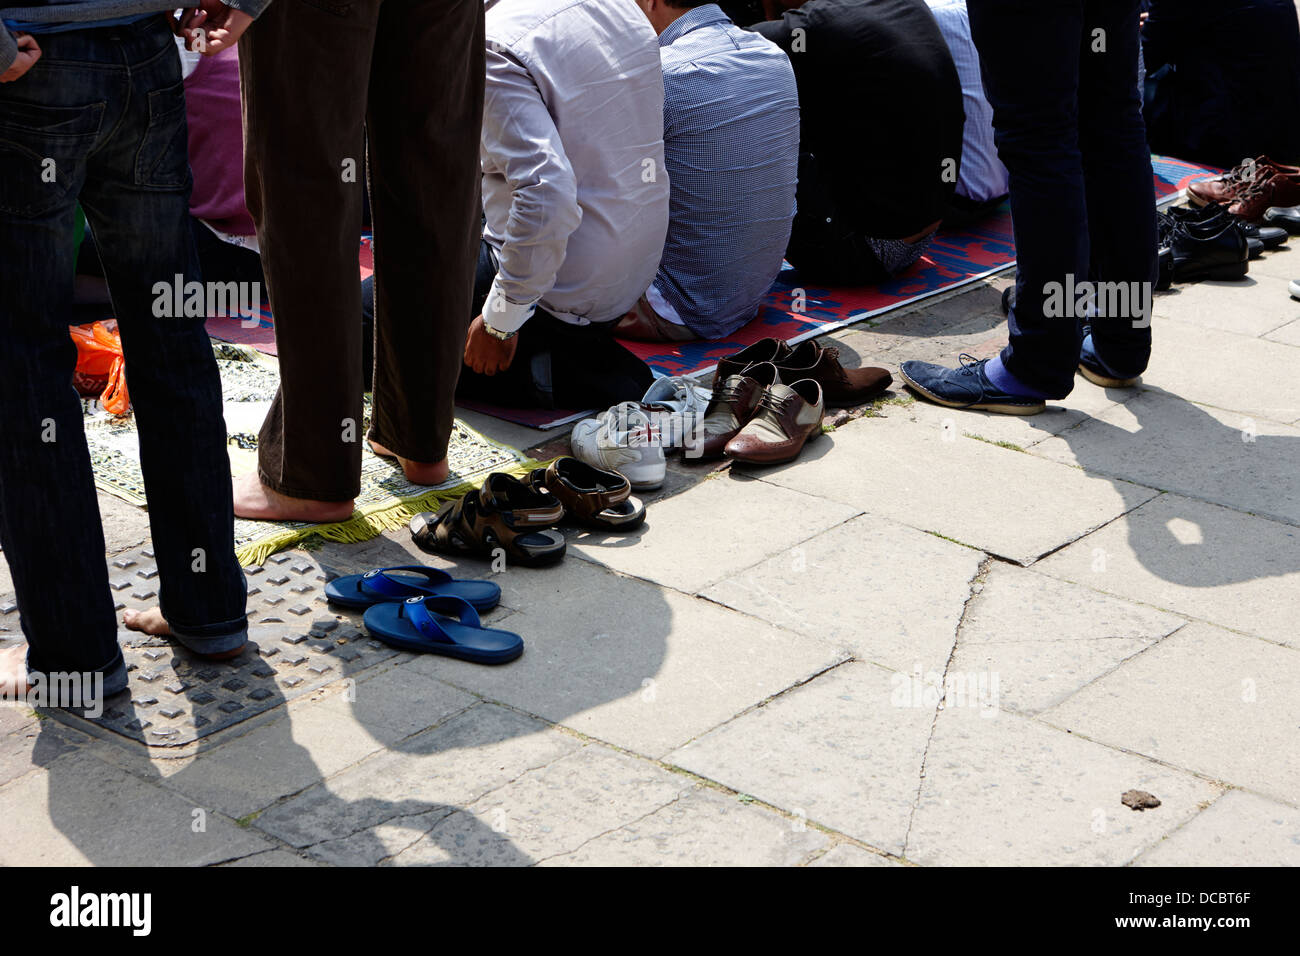 british muslims answer midday call to prayer at mosque in central London England UK - Stock Image